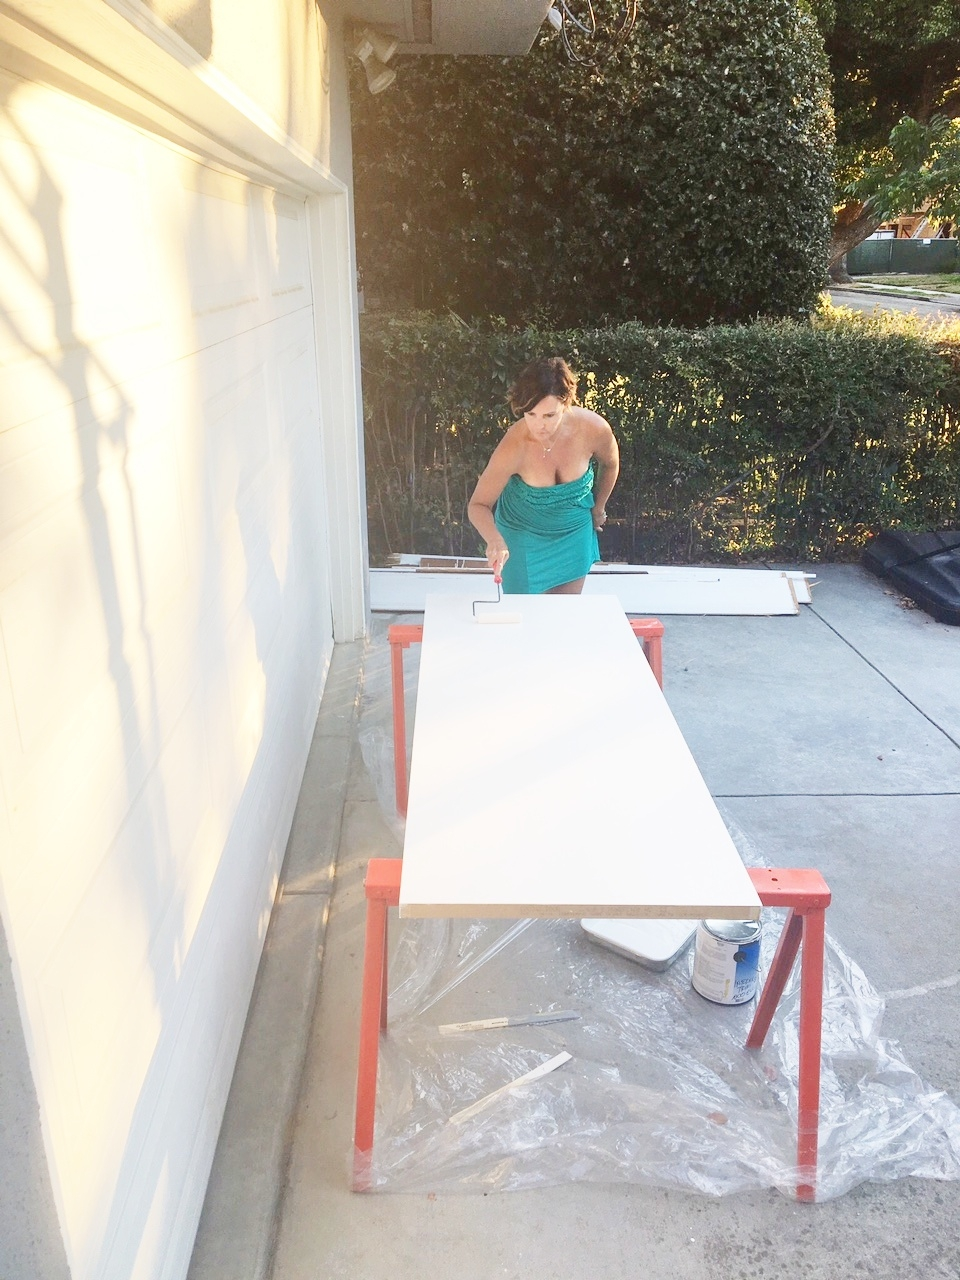 Excuse the outfit. I don't usually paint in strapless dresses but I was putting a final coat on as we were running out for dinner and Lance caught me.